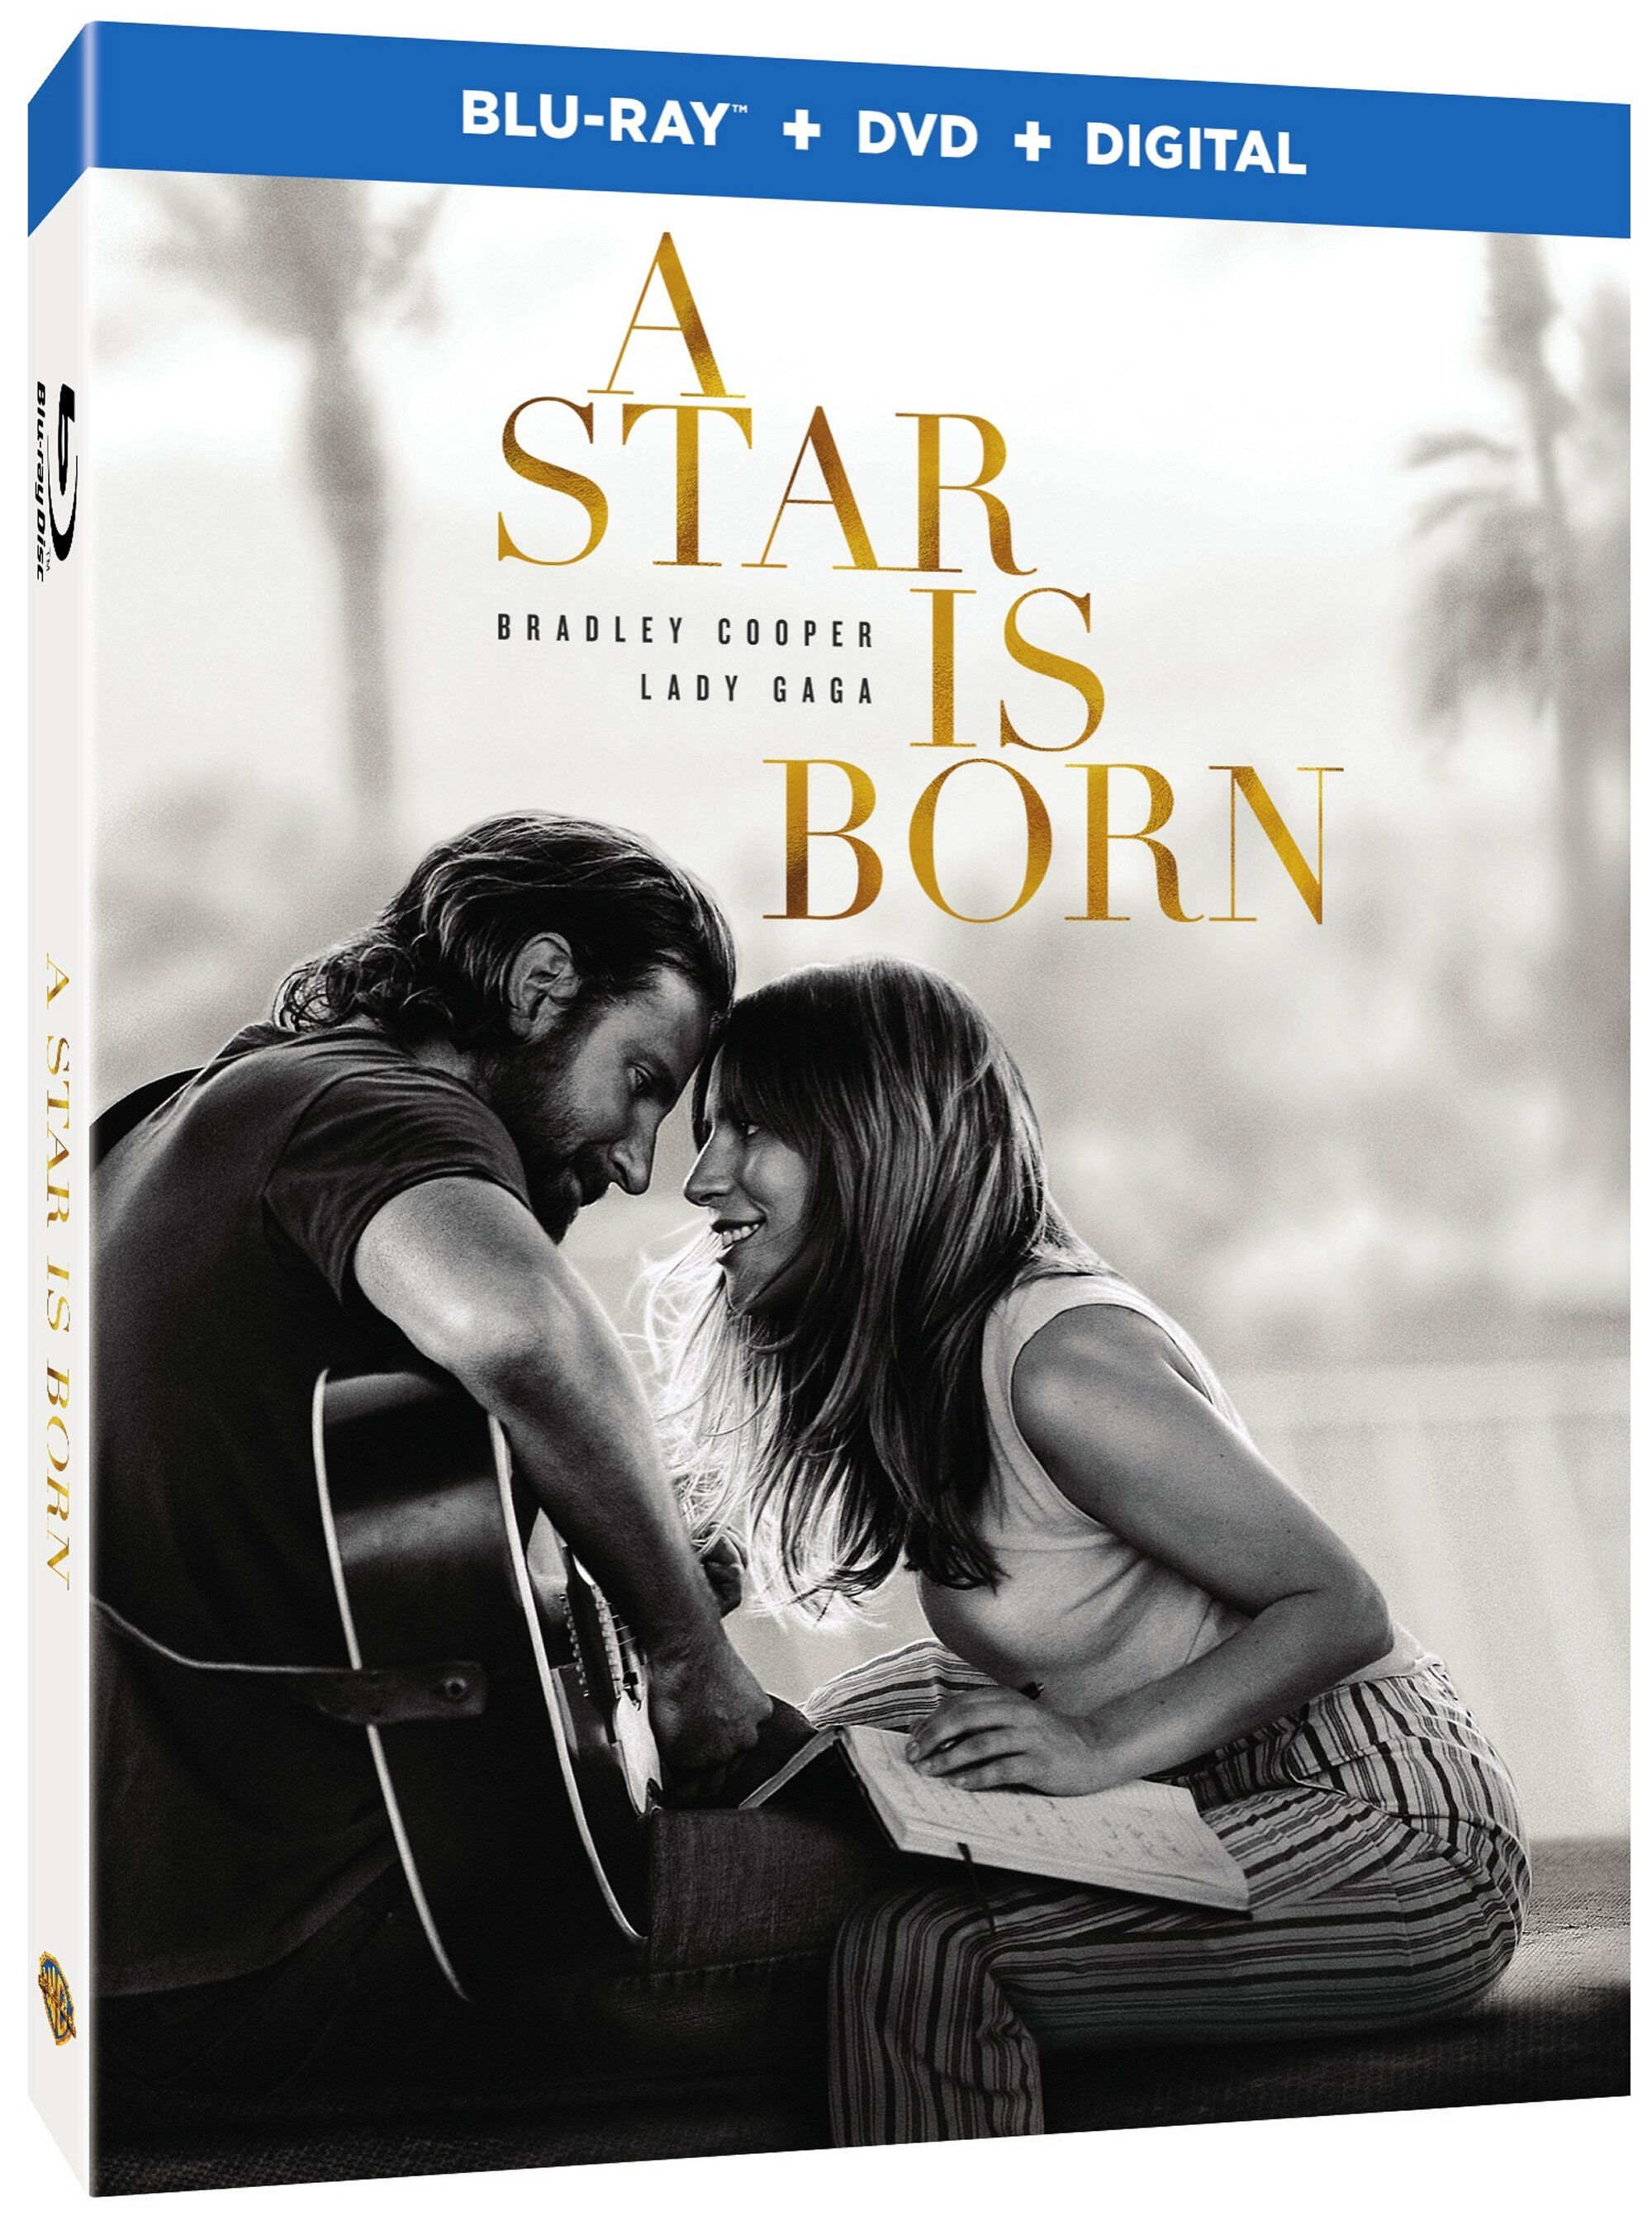 A Star is Born Blu ray cover